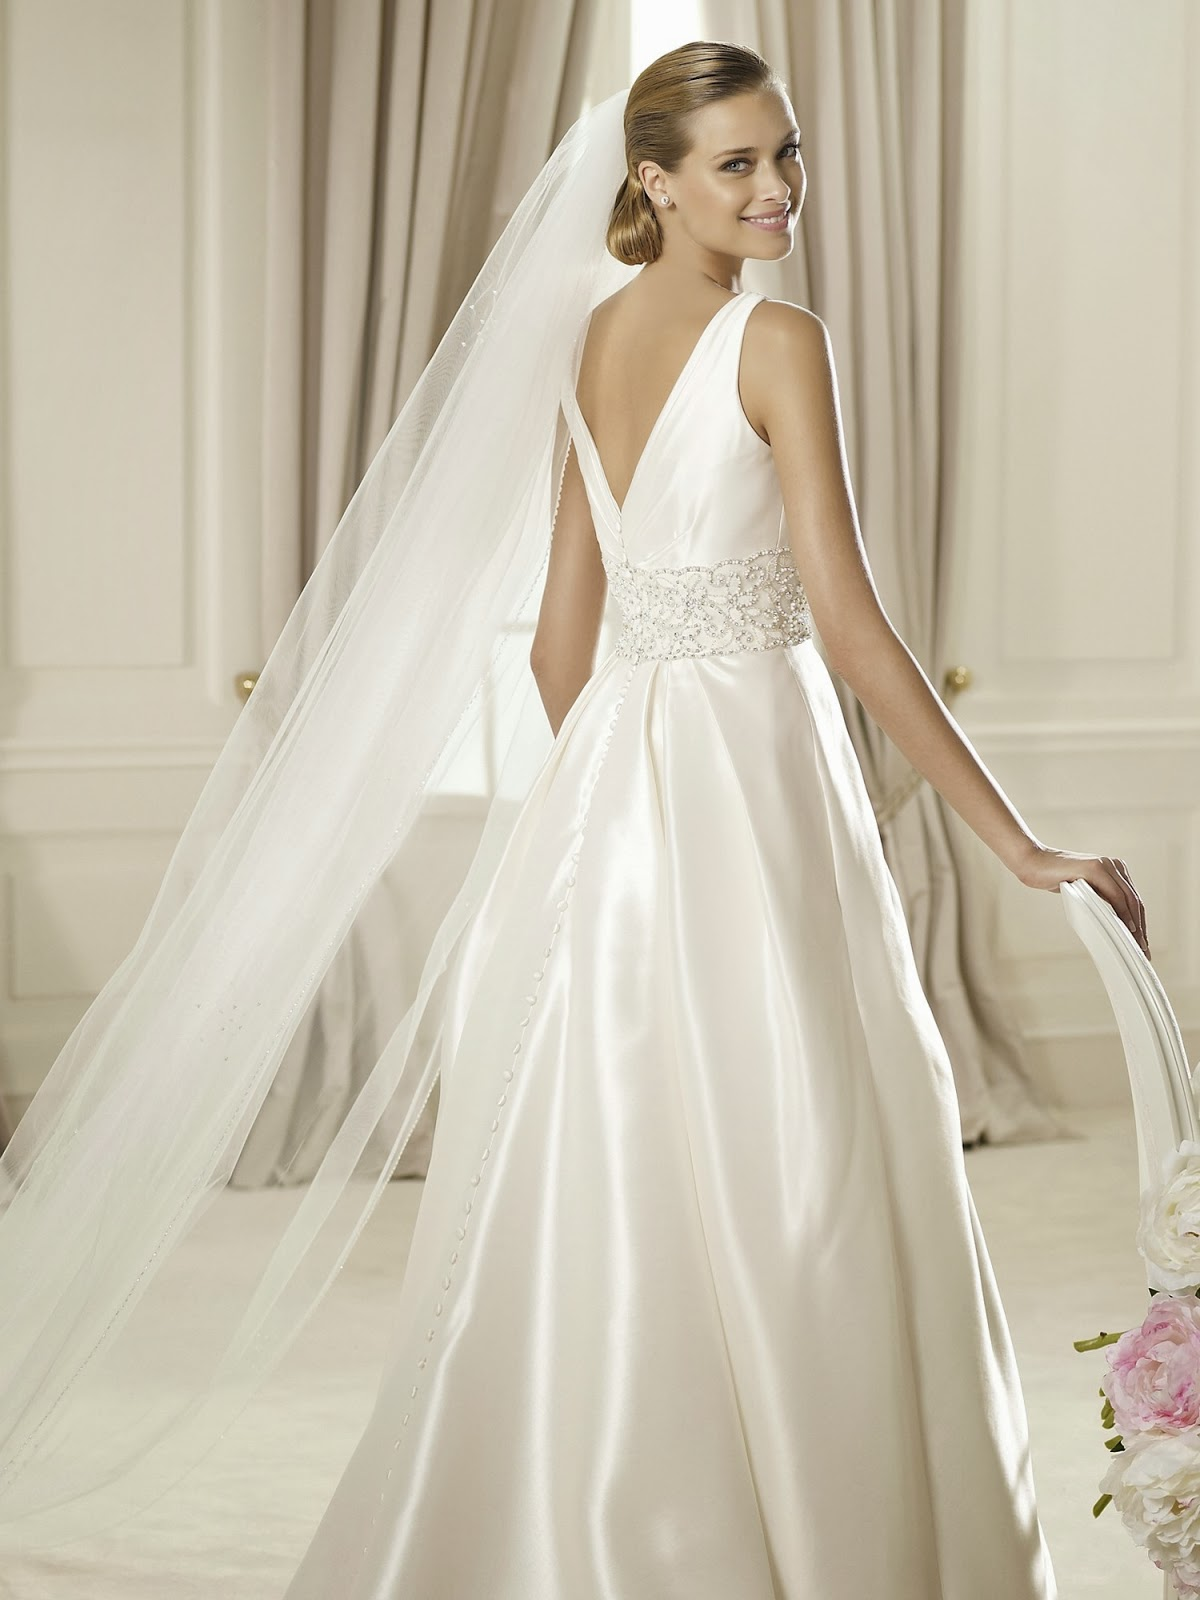 Wedding dress alterations cost uk for Wedding dress alterations cost